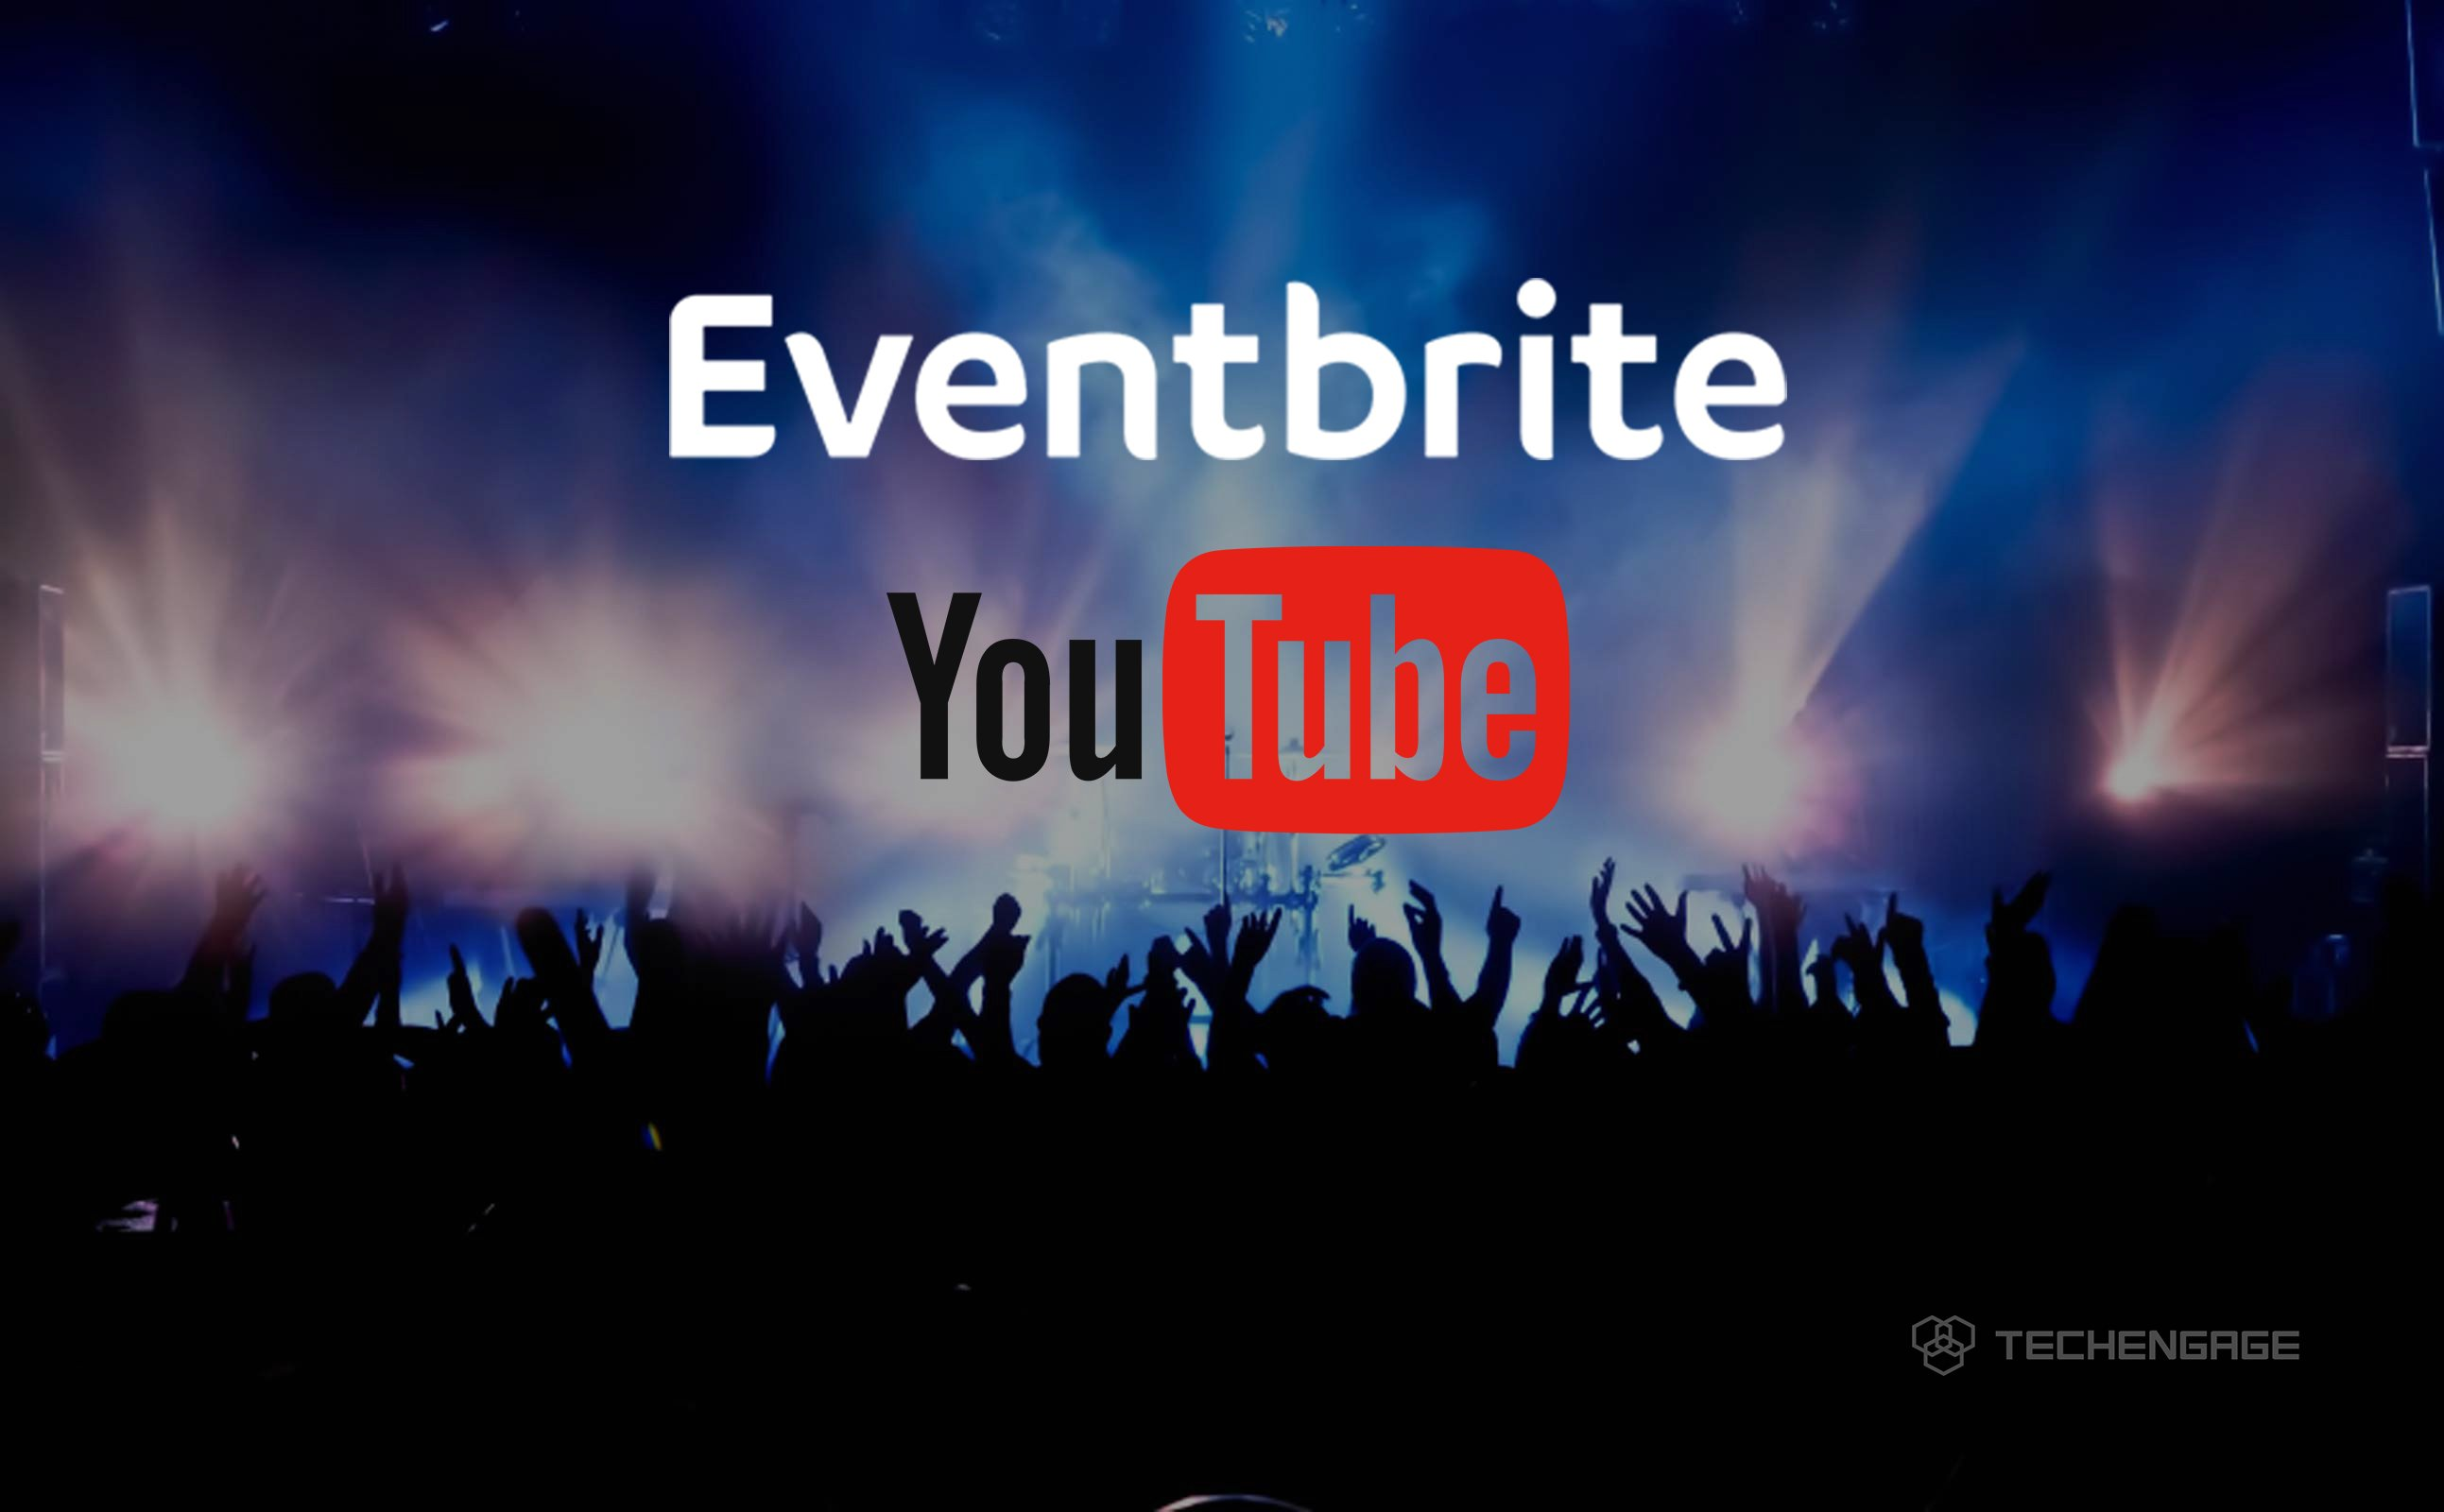 YouTube and Eventbrite, from music videos to concert tickets